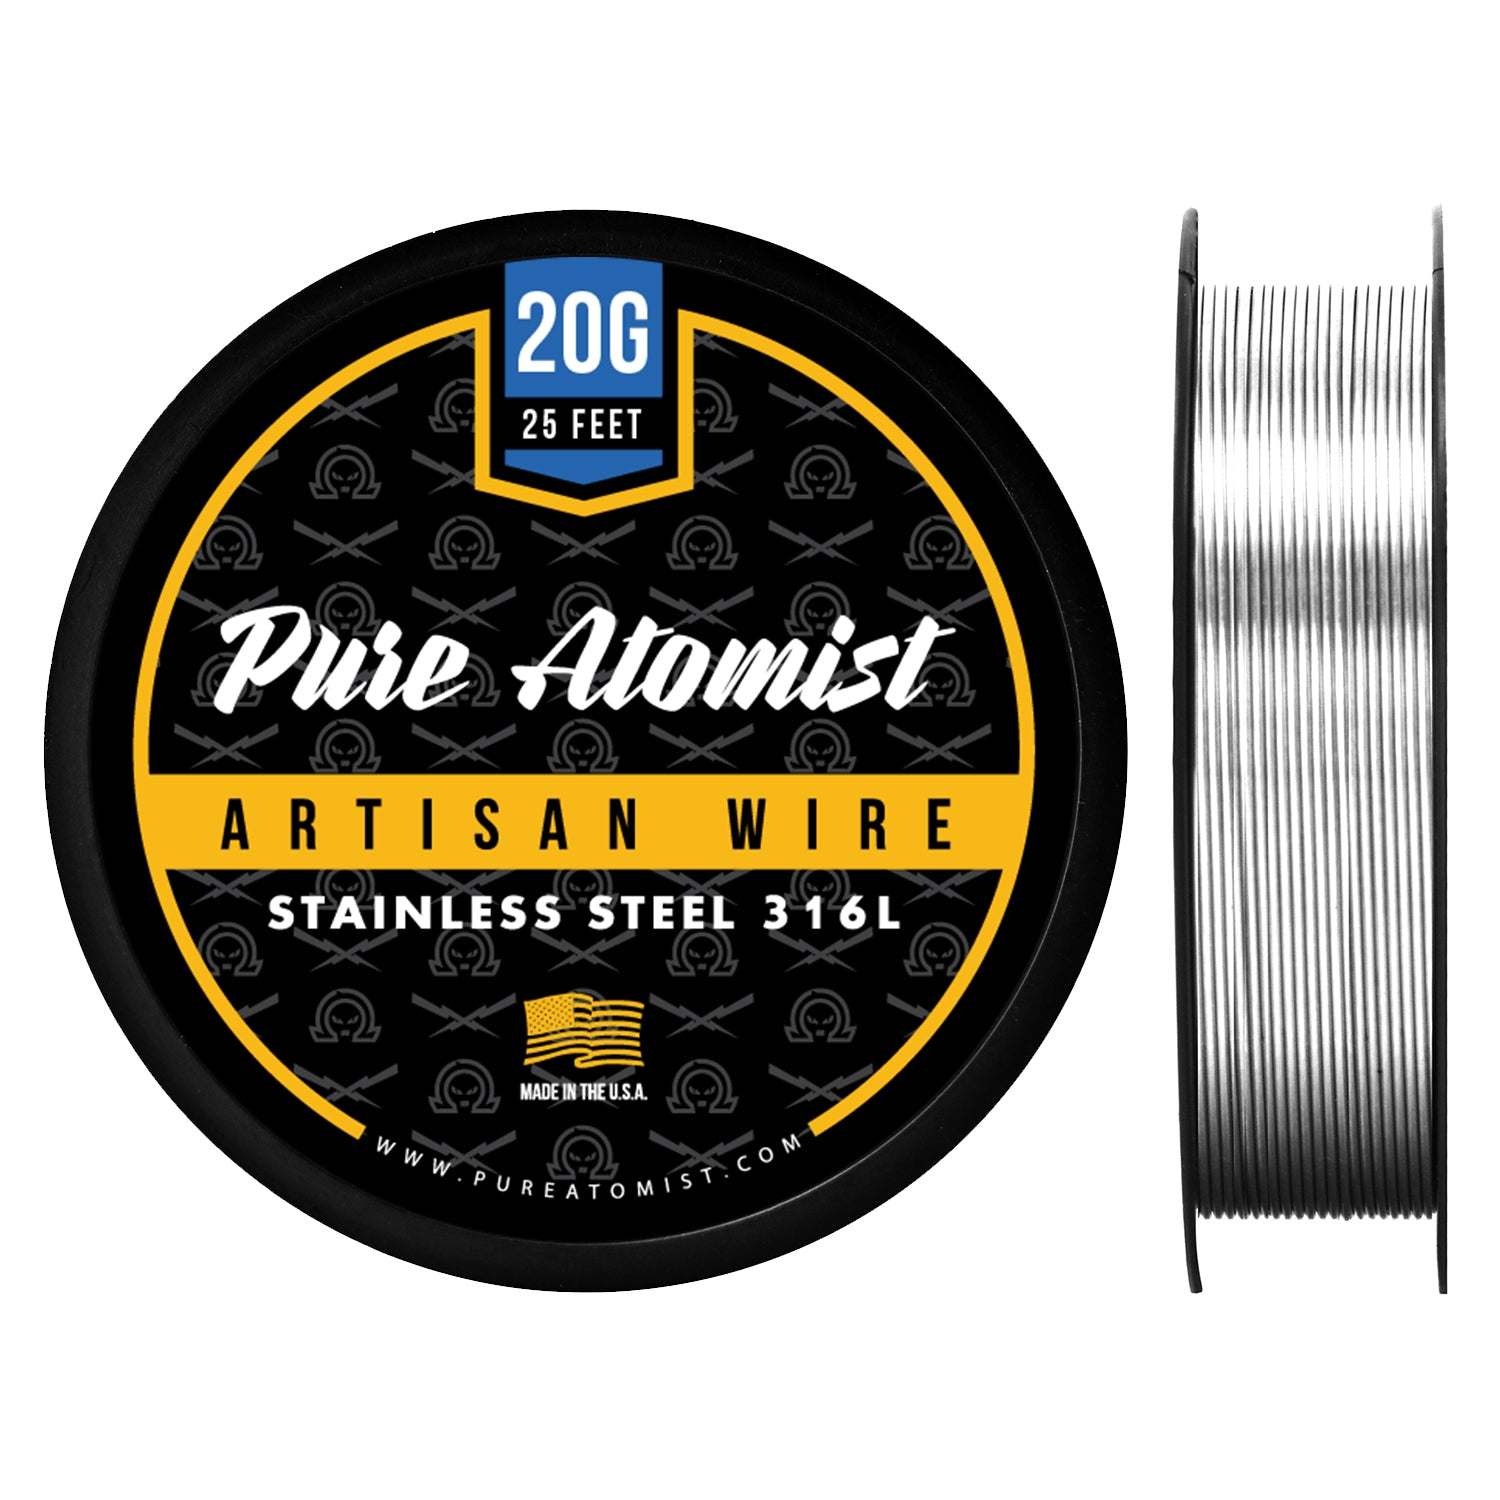 Stainless Steel 316L - Round Wire - PURE ATOMIST